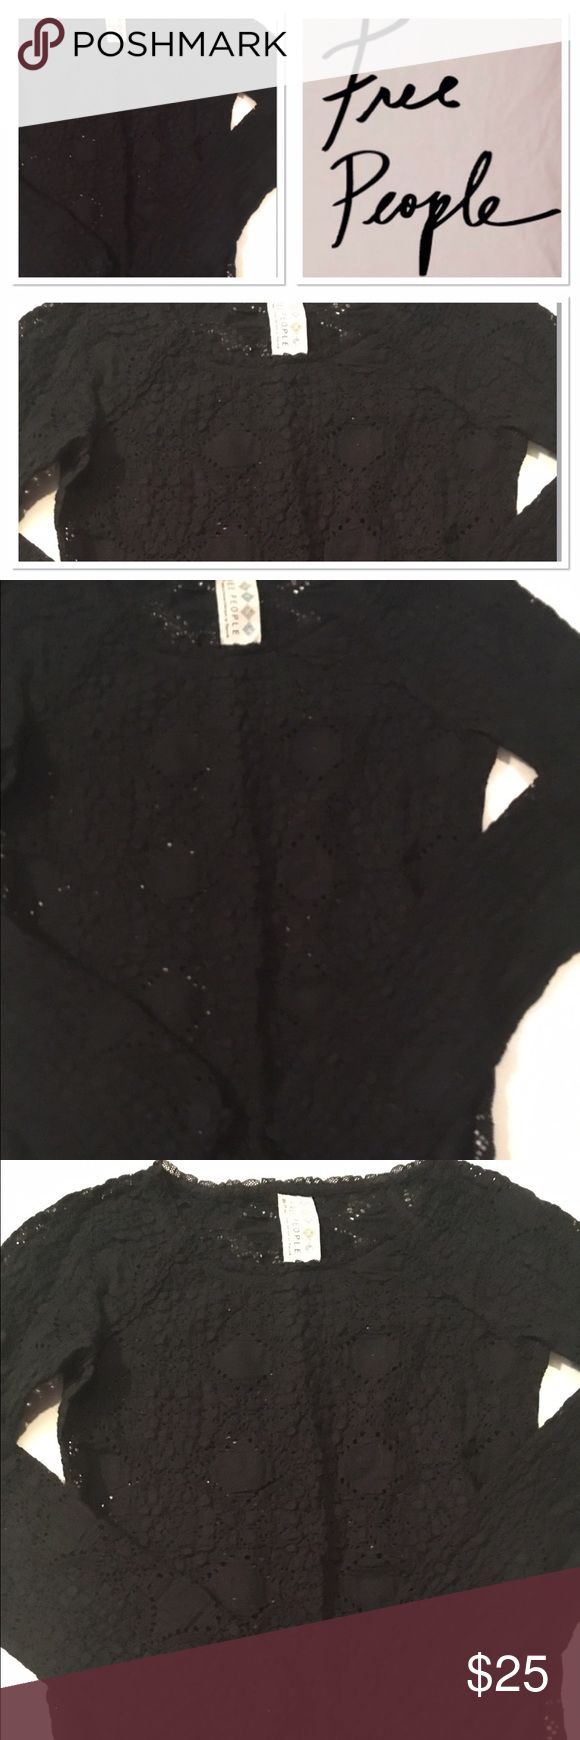 Free People black see through top Like new stylish black top in size XS see through spots Free People Tops Blouses